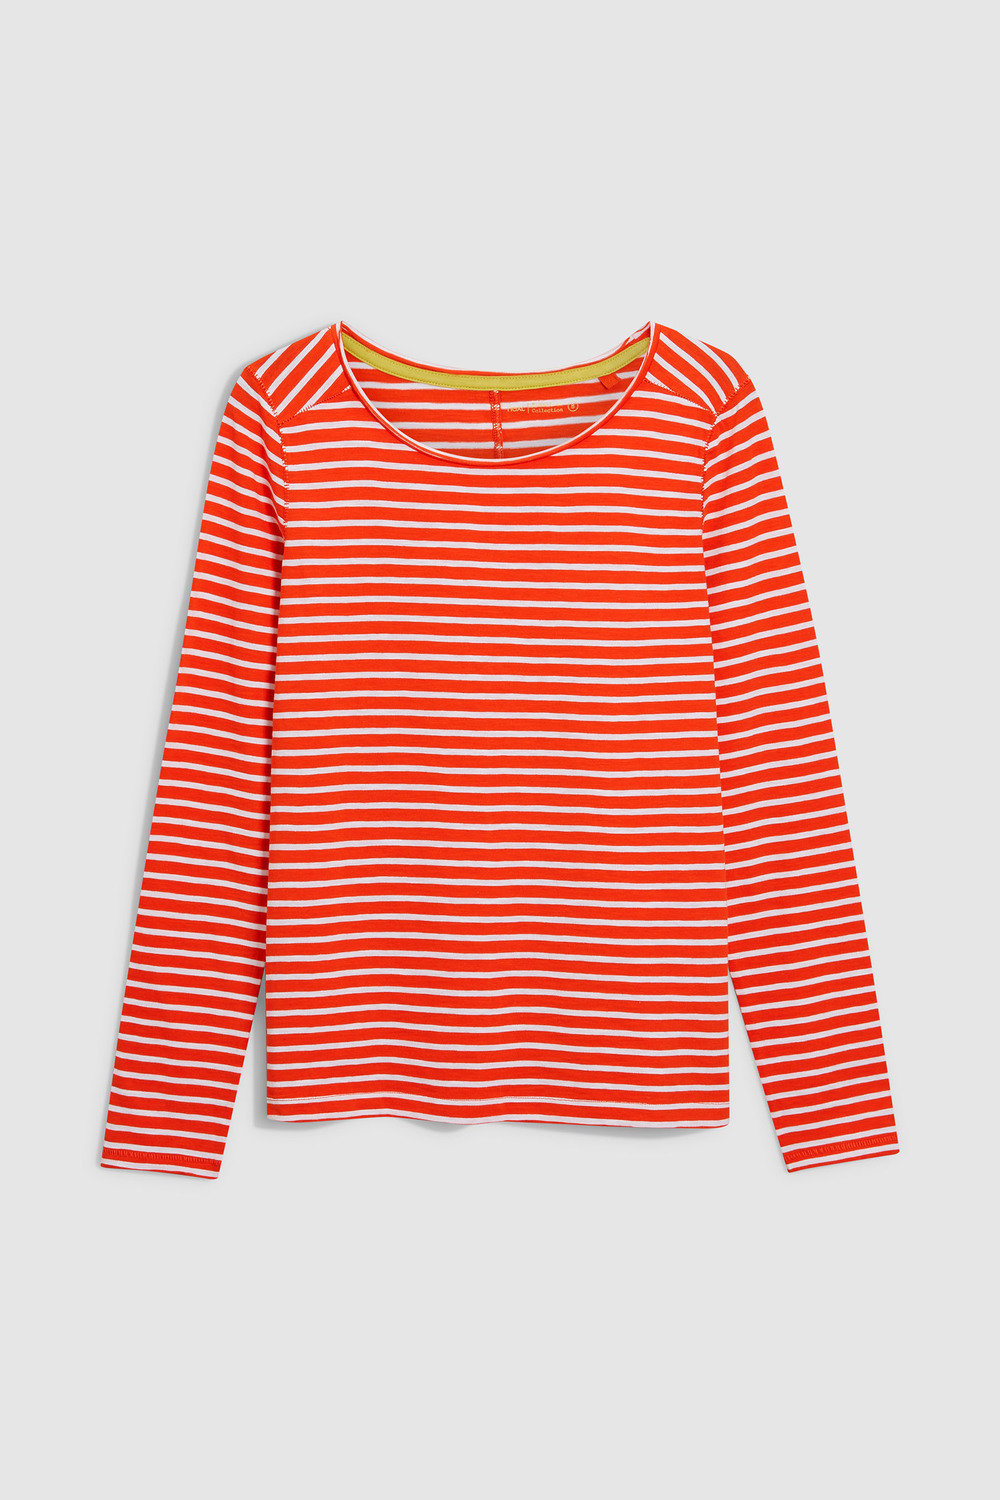 d96b3d576c Next Stripe T Shirt Womens – EDGE Engineering and Consulting Limited